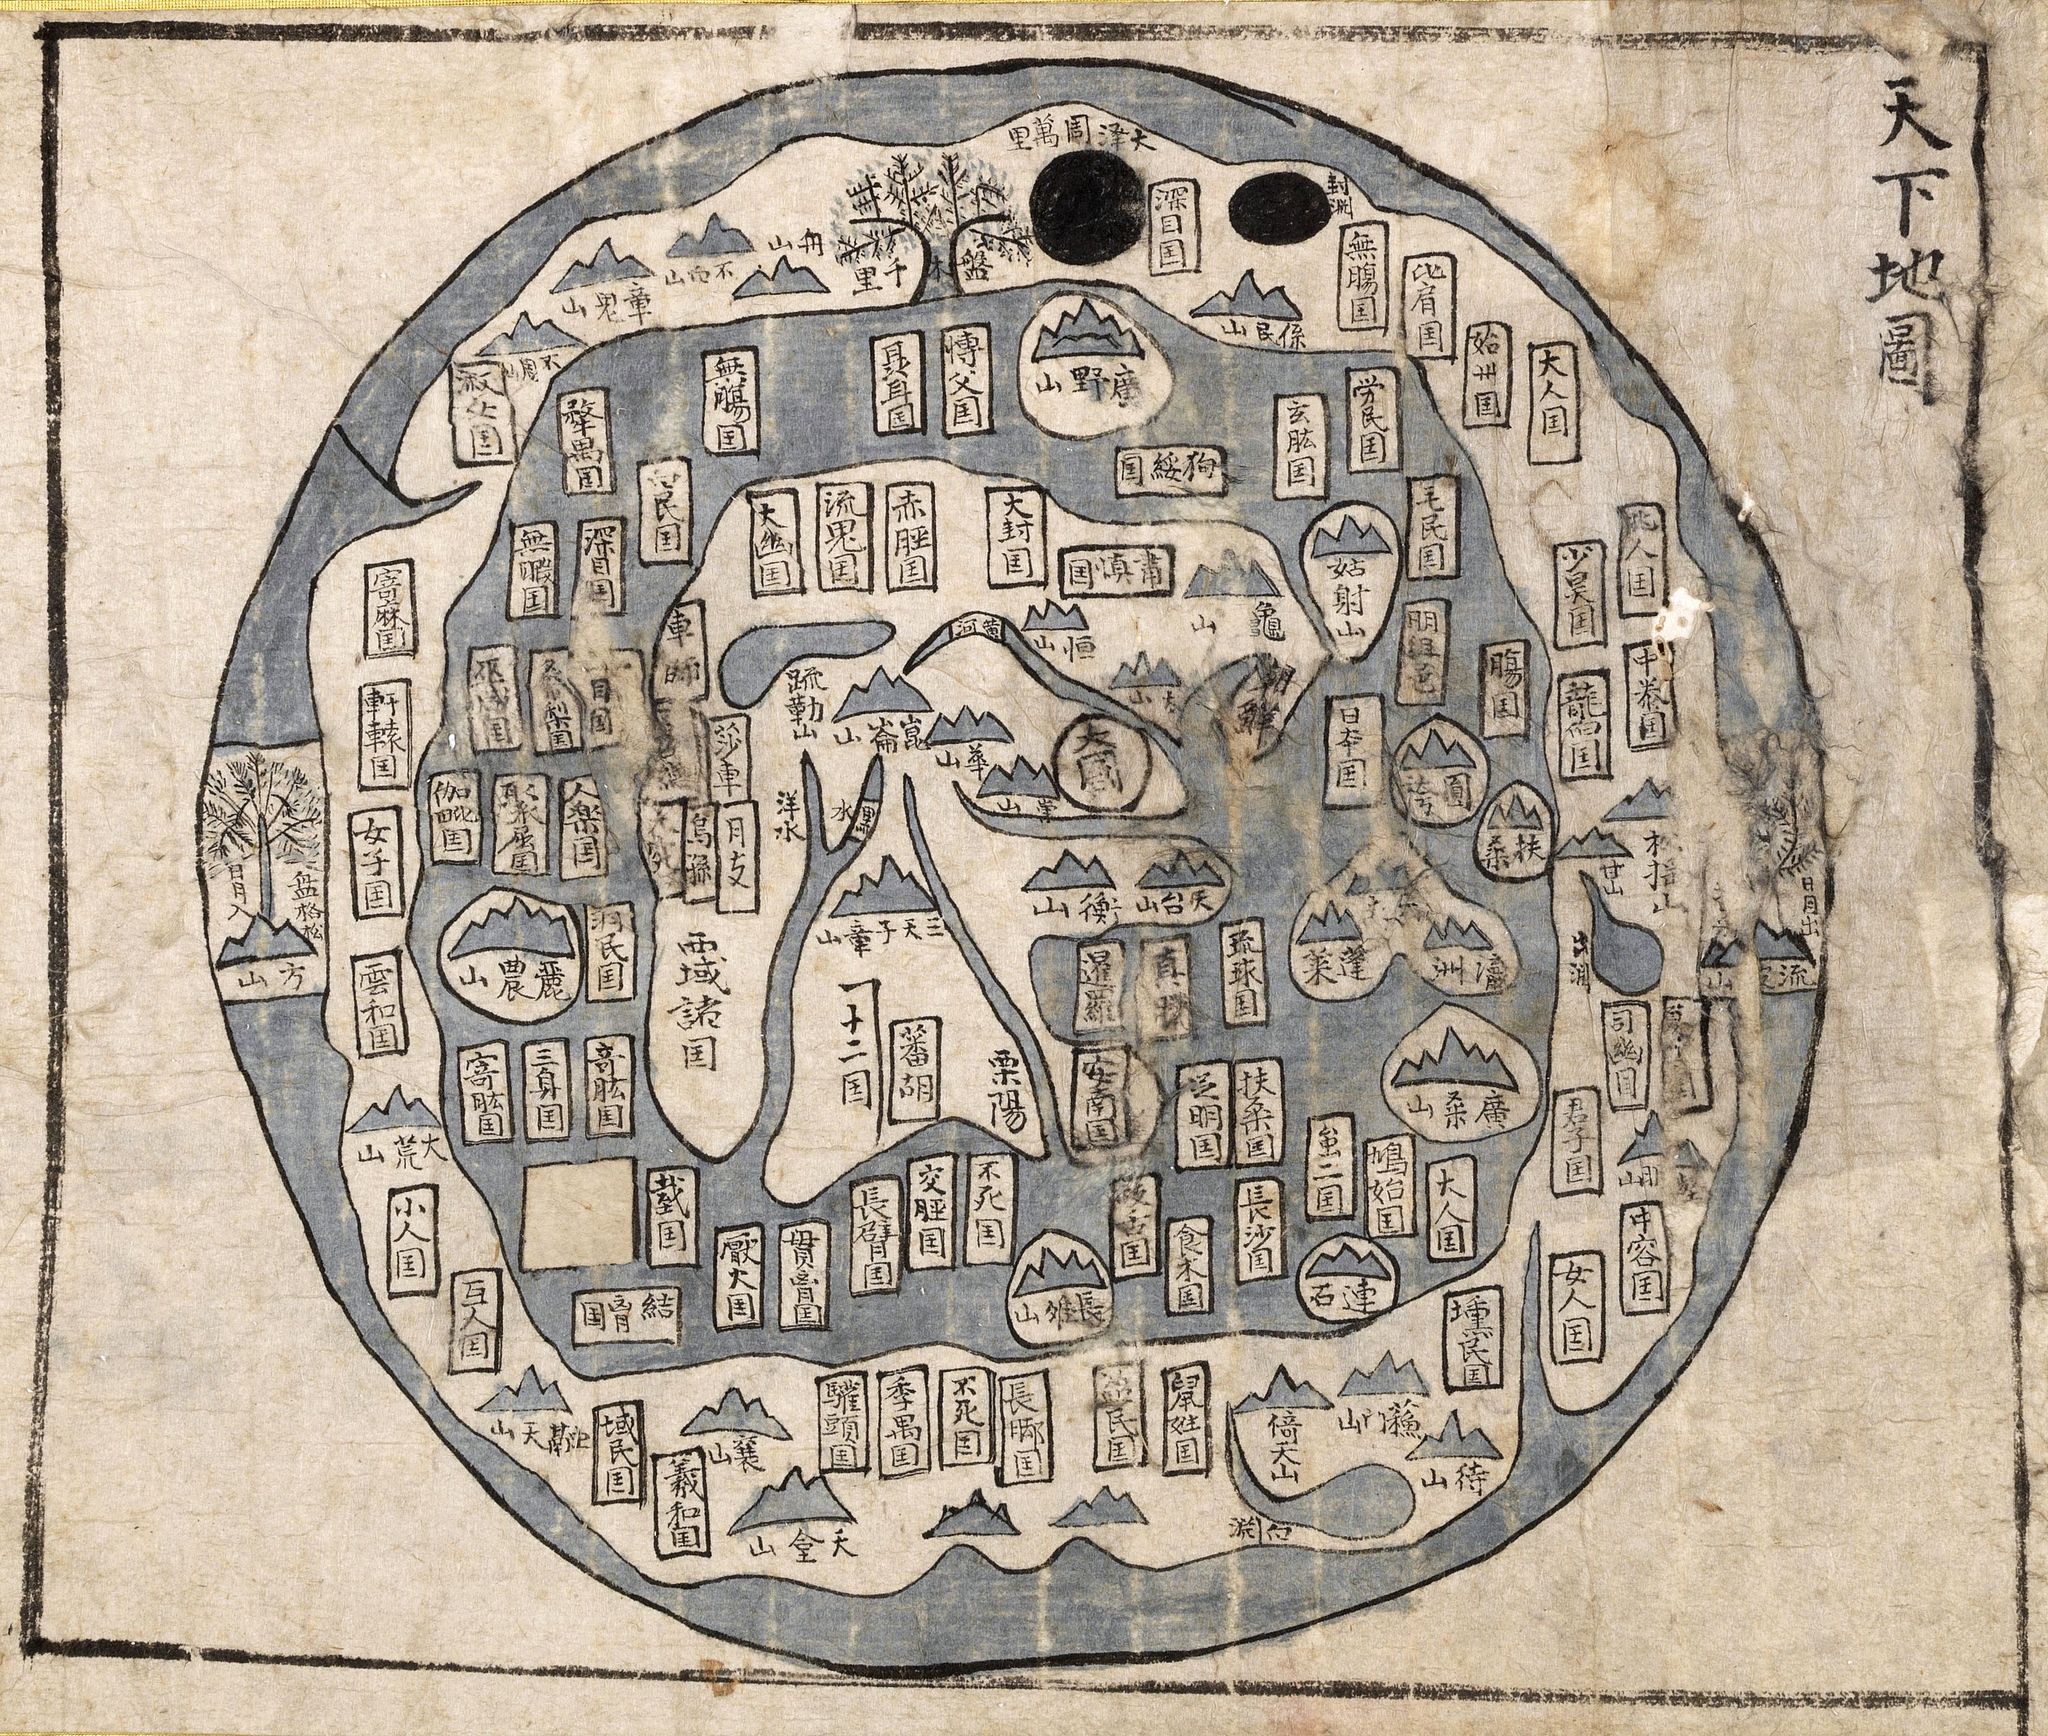 ANONYMOUS - Ch'onhado (Map of the world beneath the heavens)